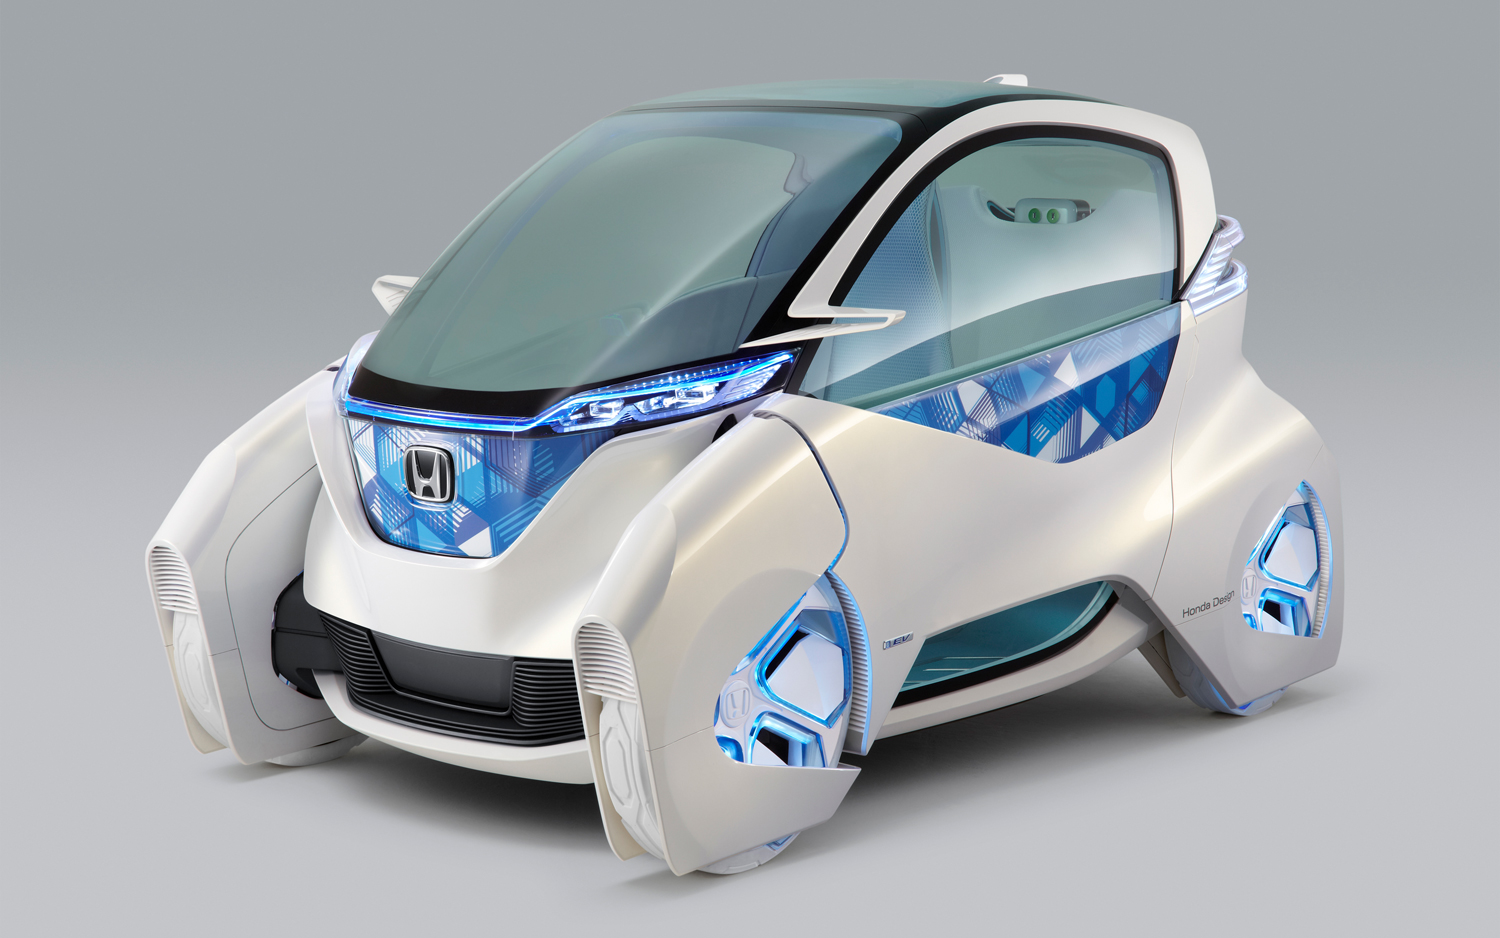 Hondas Tokyo Show Concepts Include Small Electric Sports Car